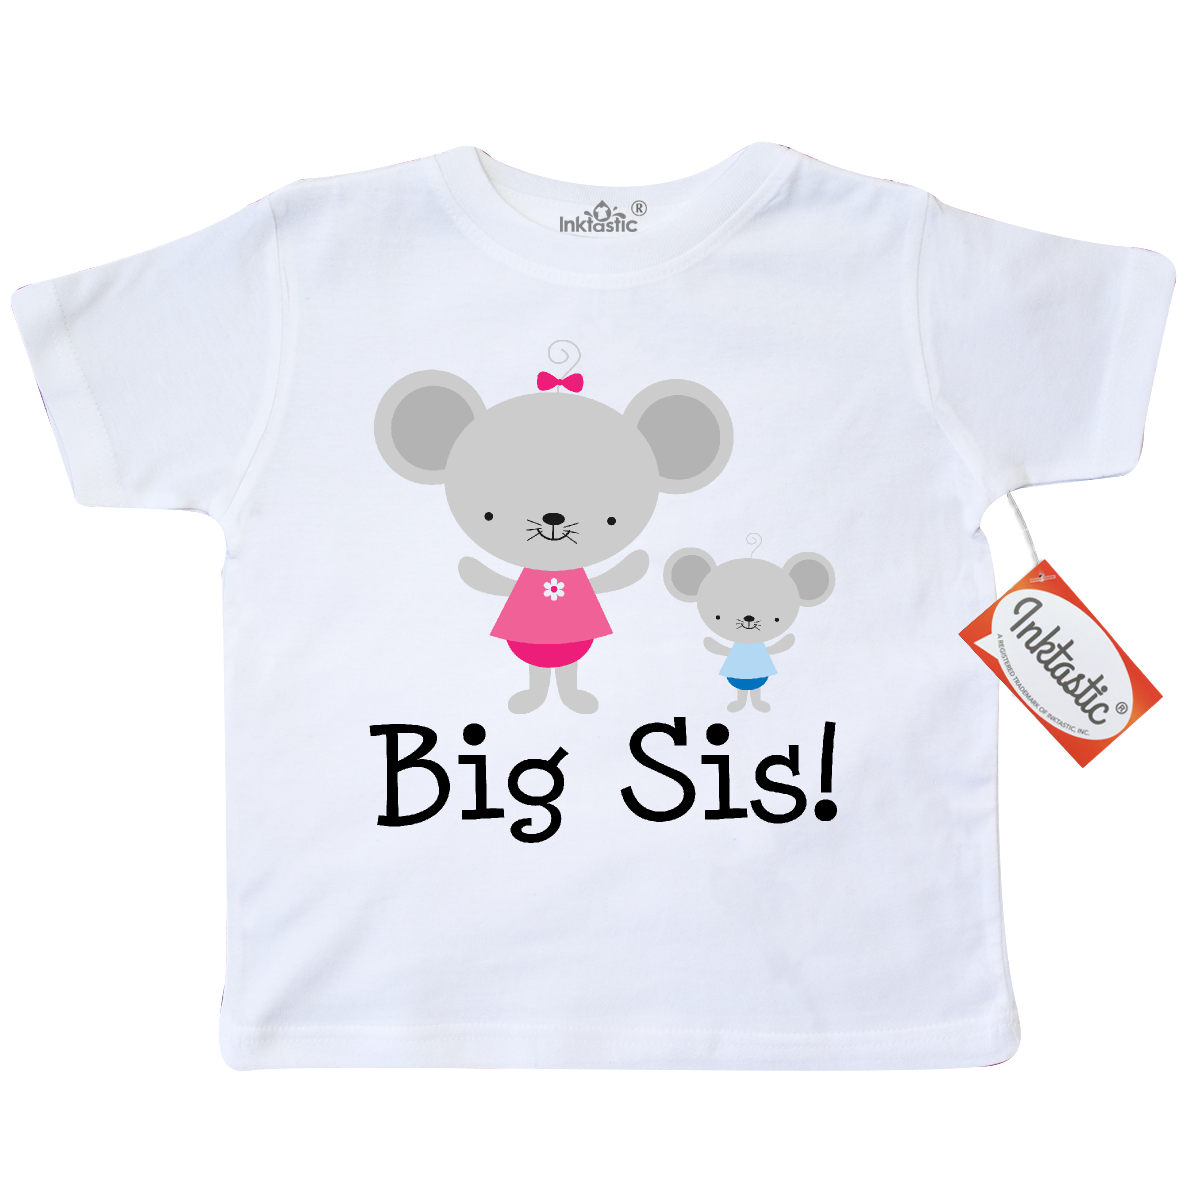 Big Sis with Lil Bro Toddler T-Shirt White $12.99 www.homewiseshopperkids.com